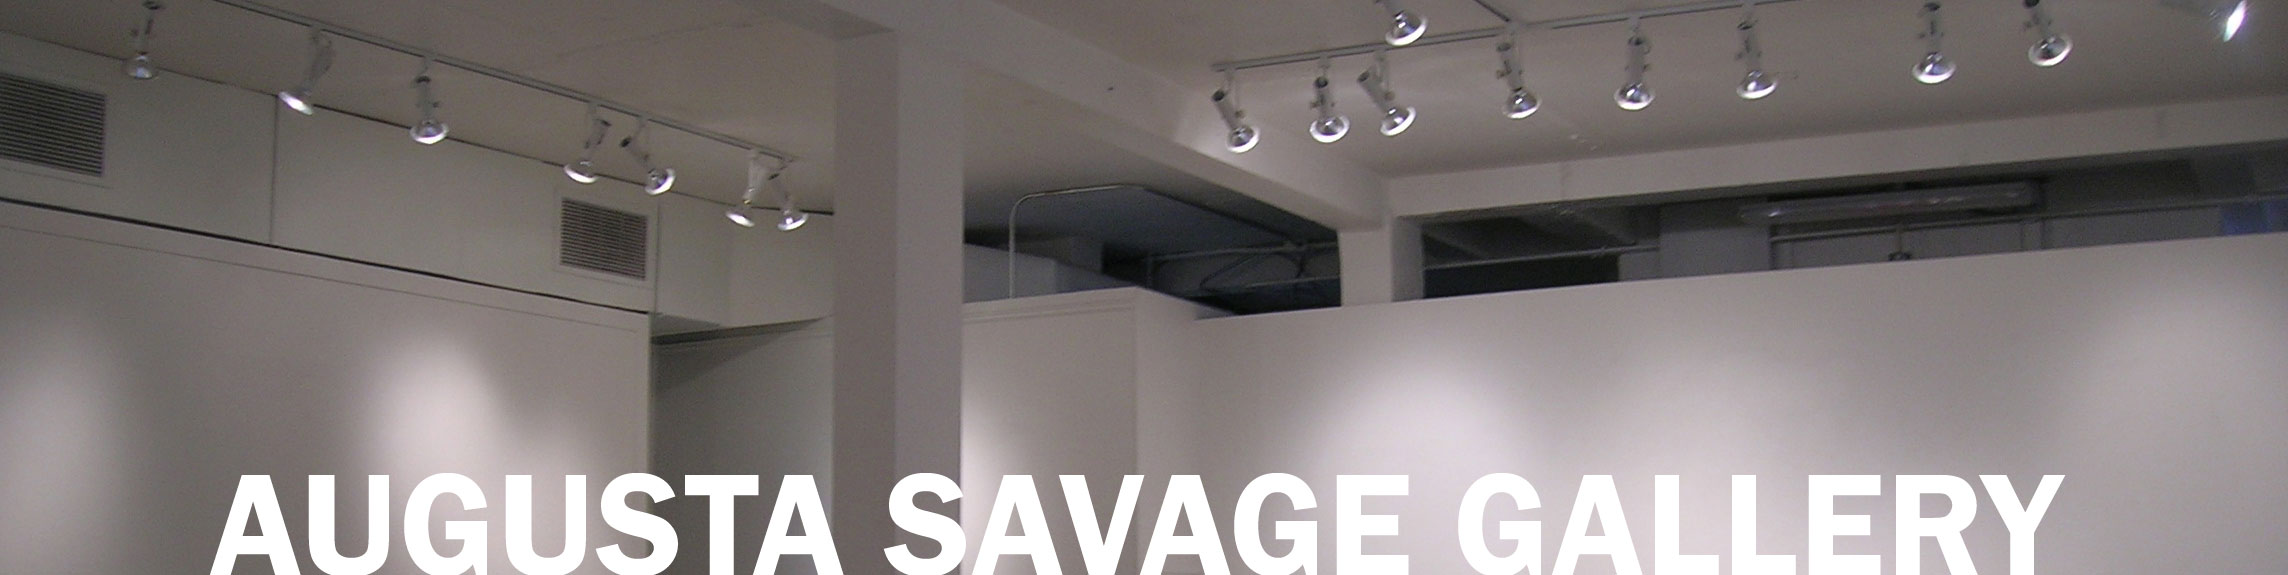 Augusta Savage Gallery